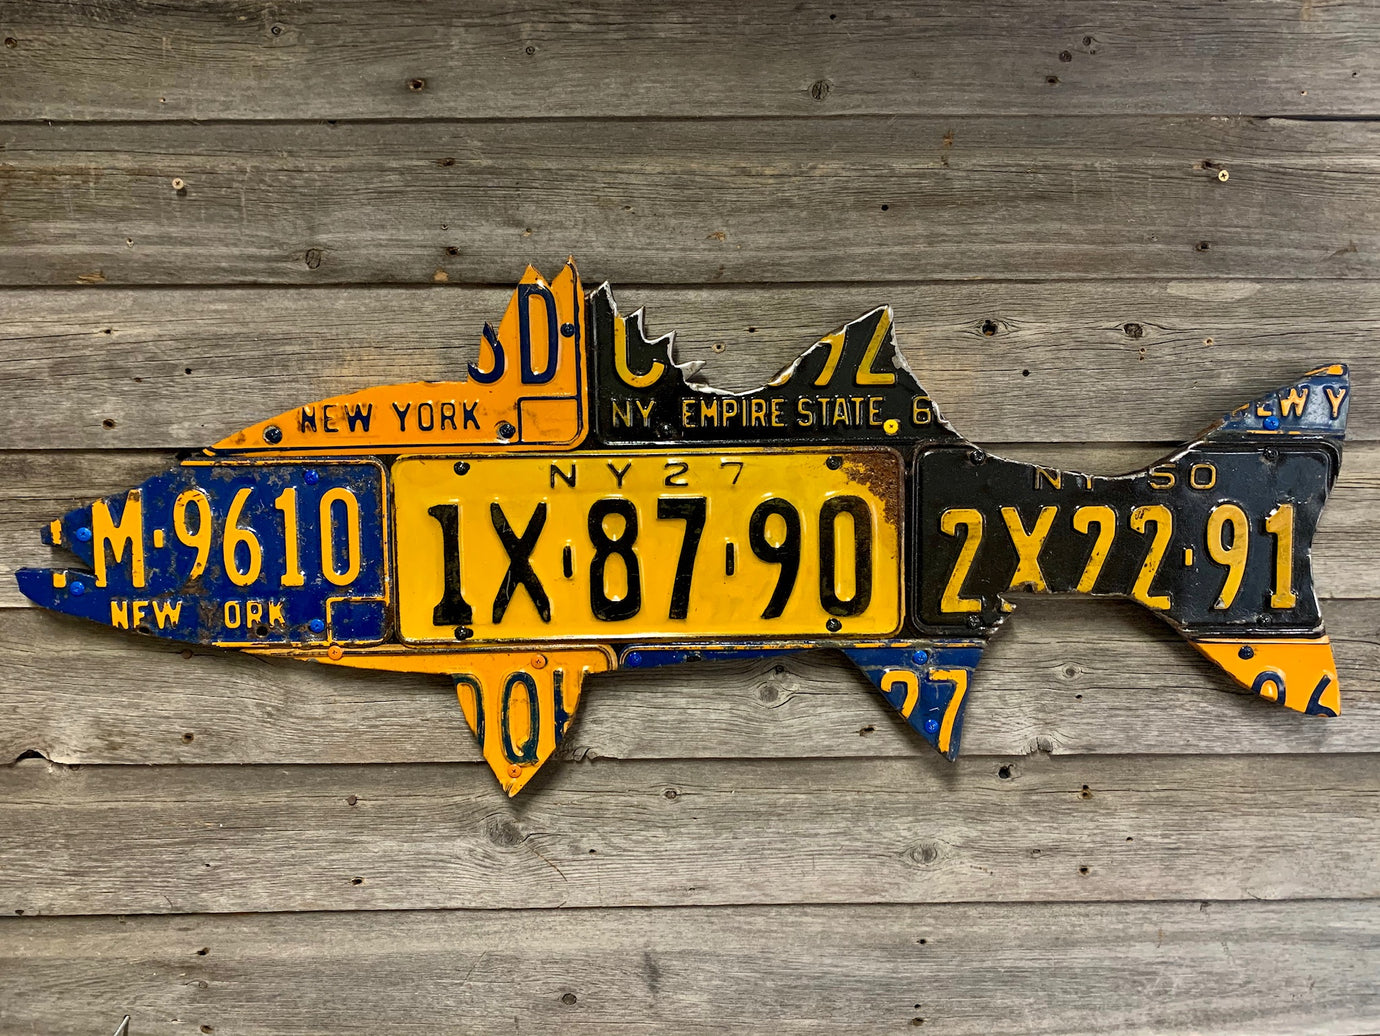 New York Striped Bass License Plate Art